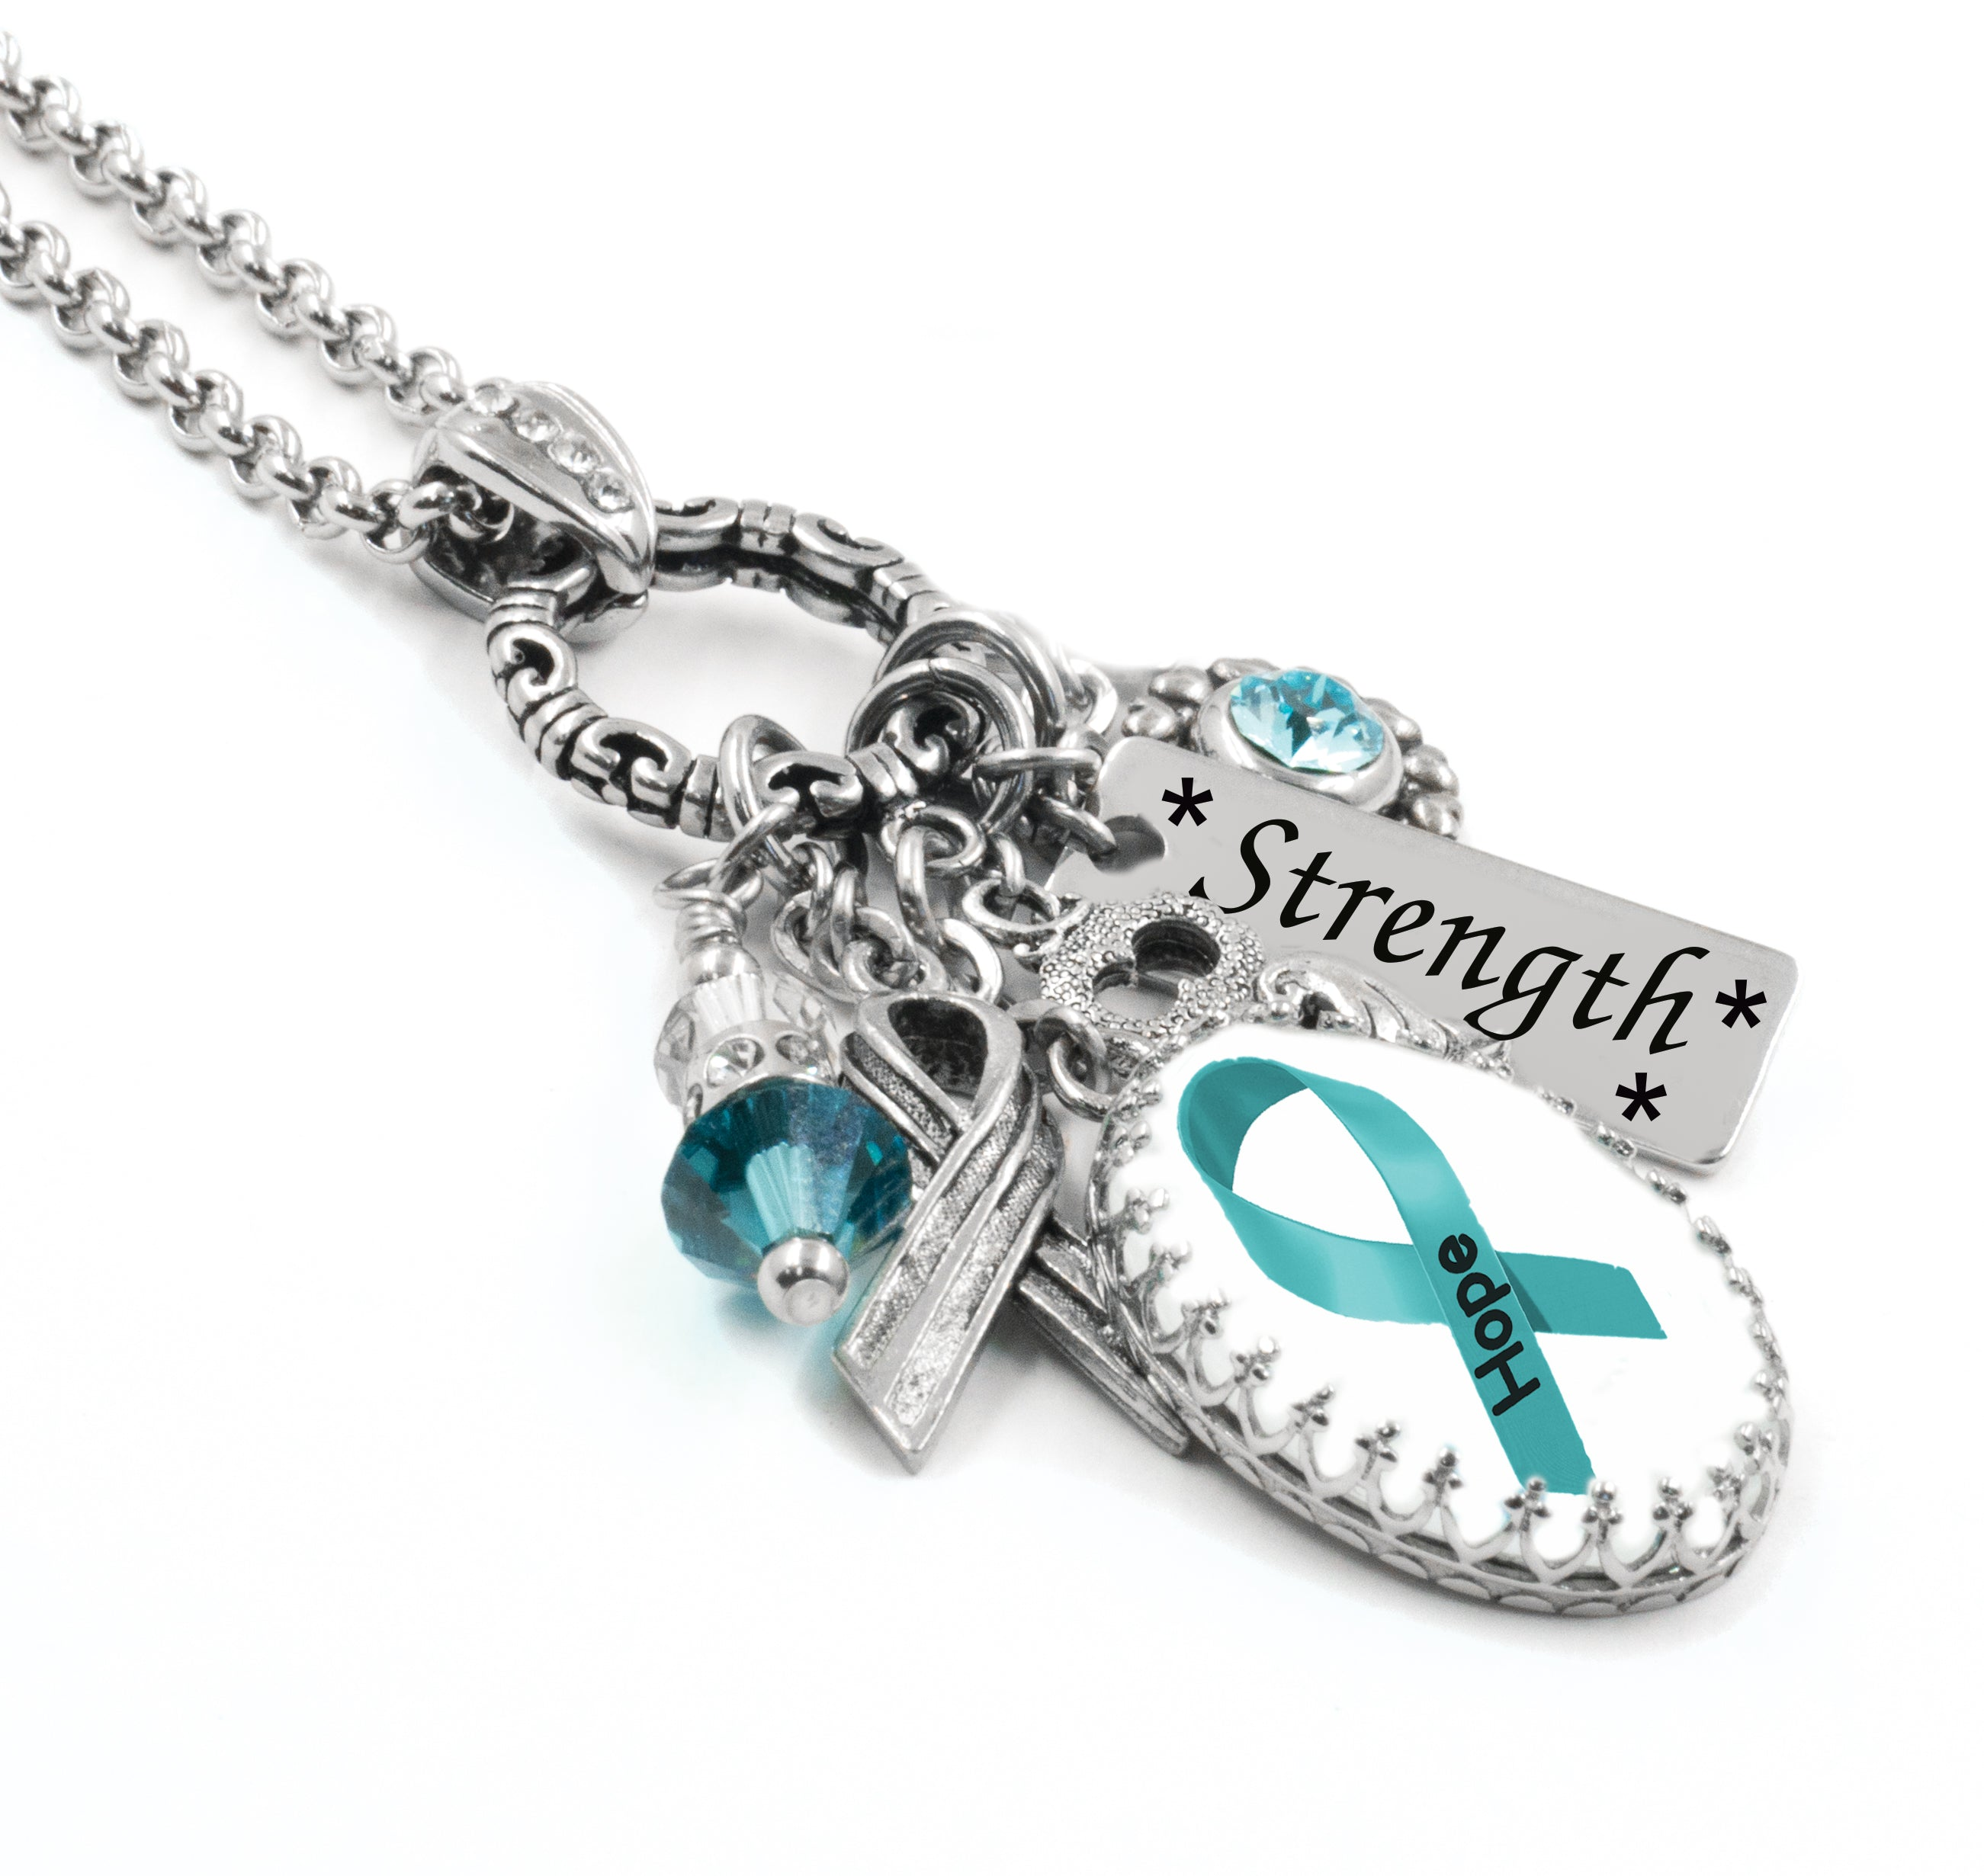 0c4ca5871 Ovarian Cancer Awareness Necklace – Blackberry Designs Jewelry